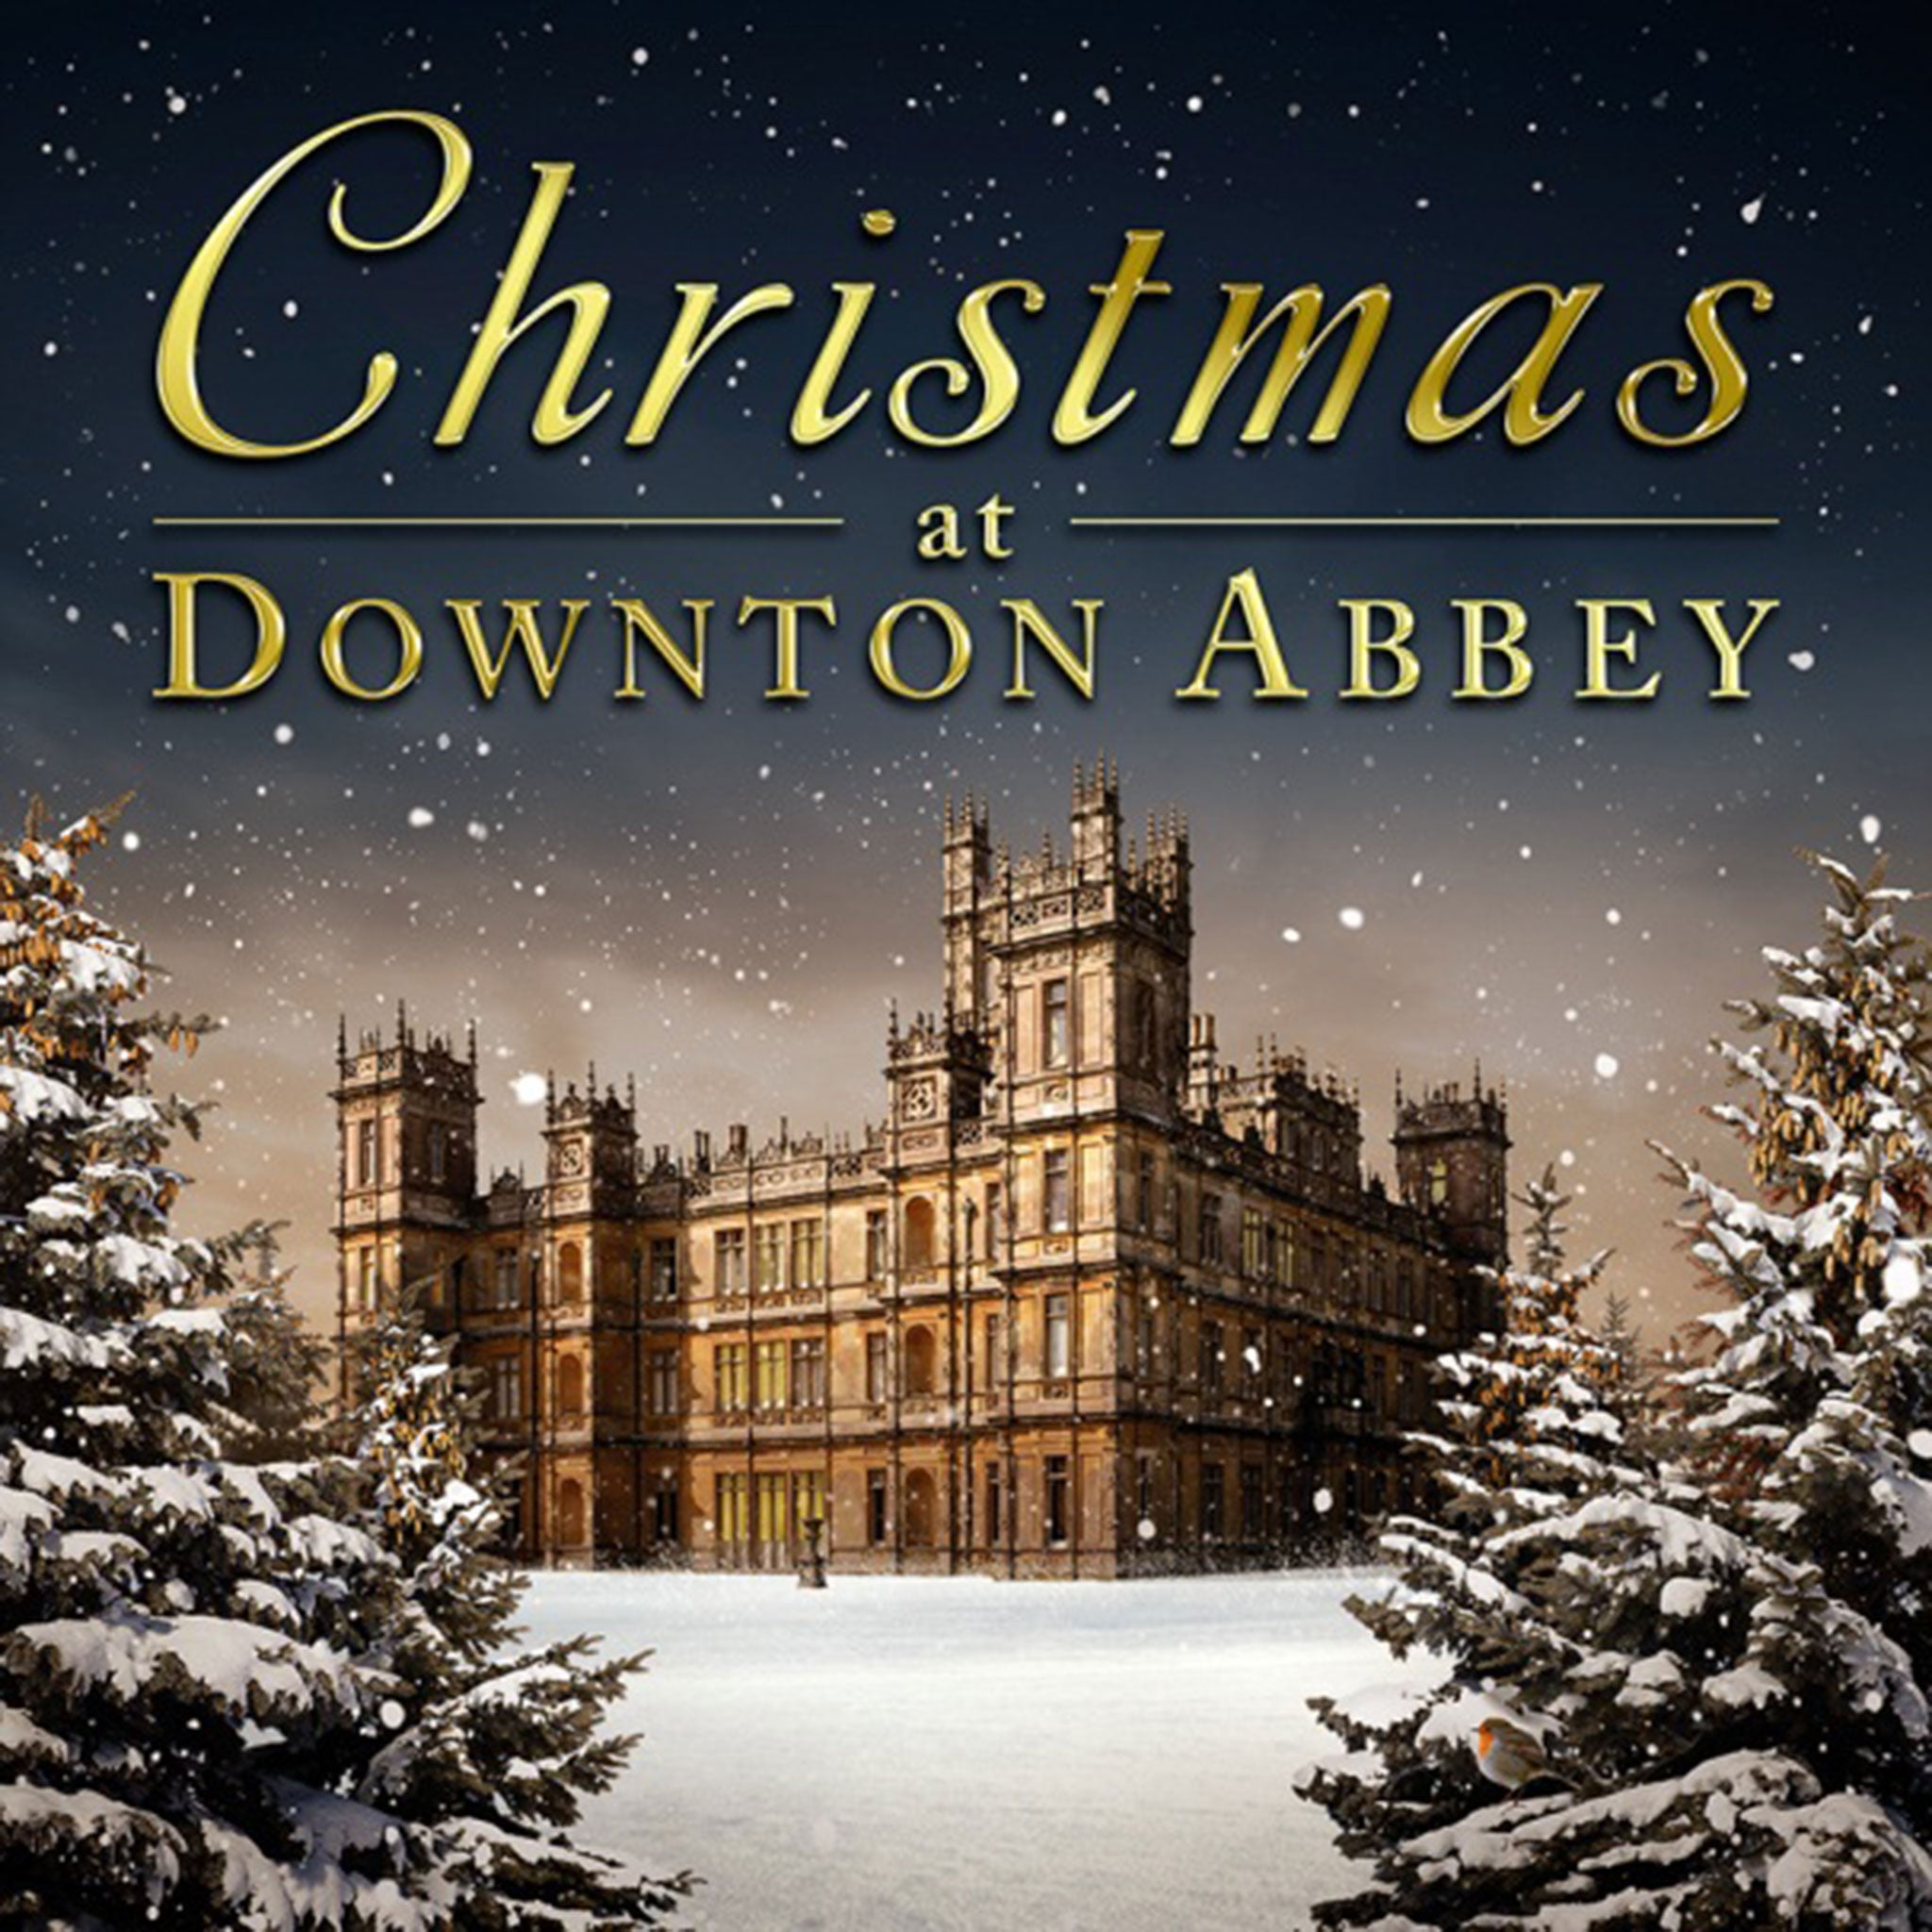 Downton Abbey Christmas album featuring Elizabeth McGovern to be ...